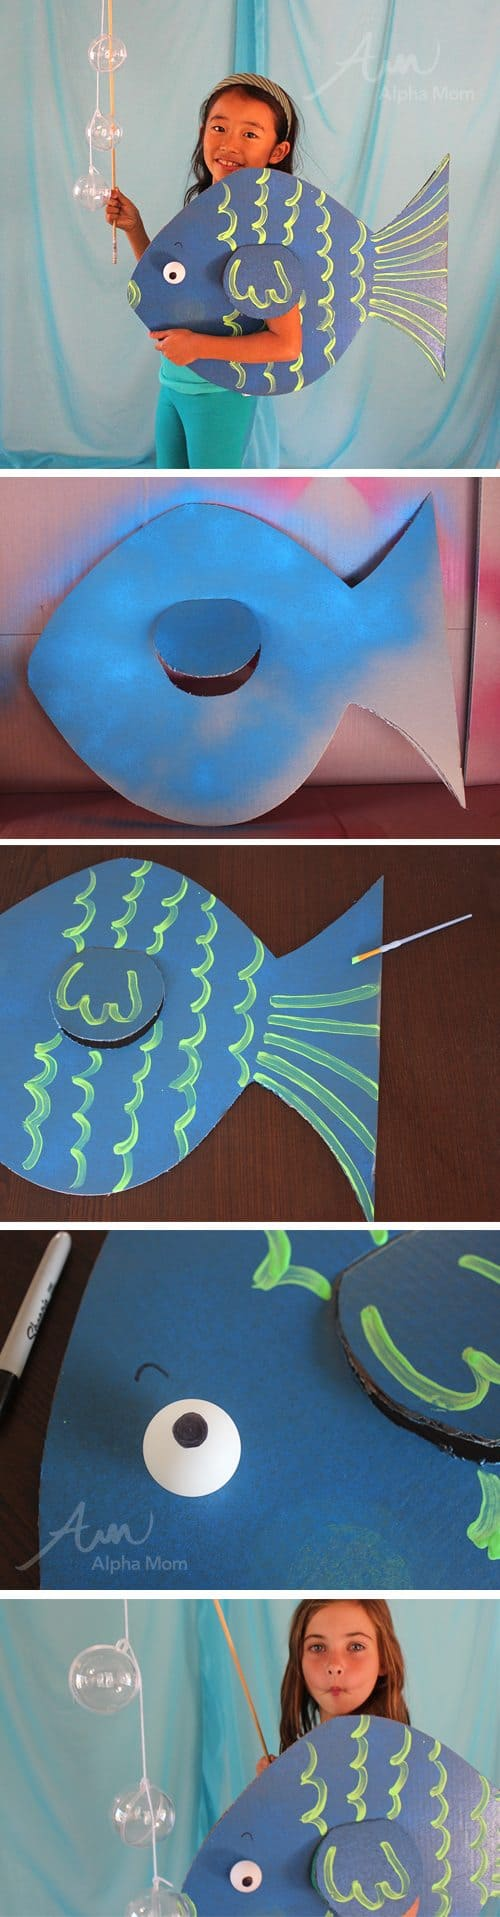 DIY Under the Sea Costumes: Fish! by Brenda Ponnay for Alphamom.com